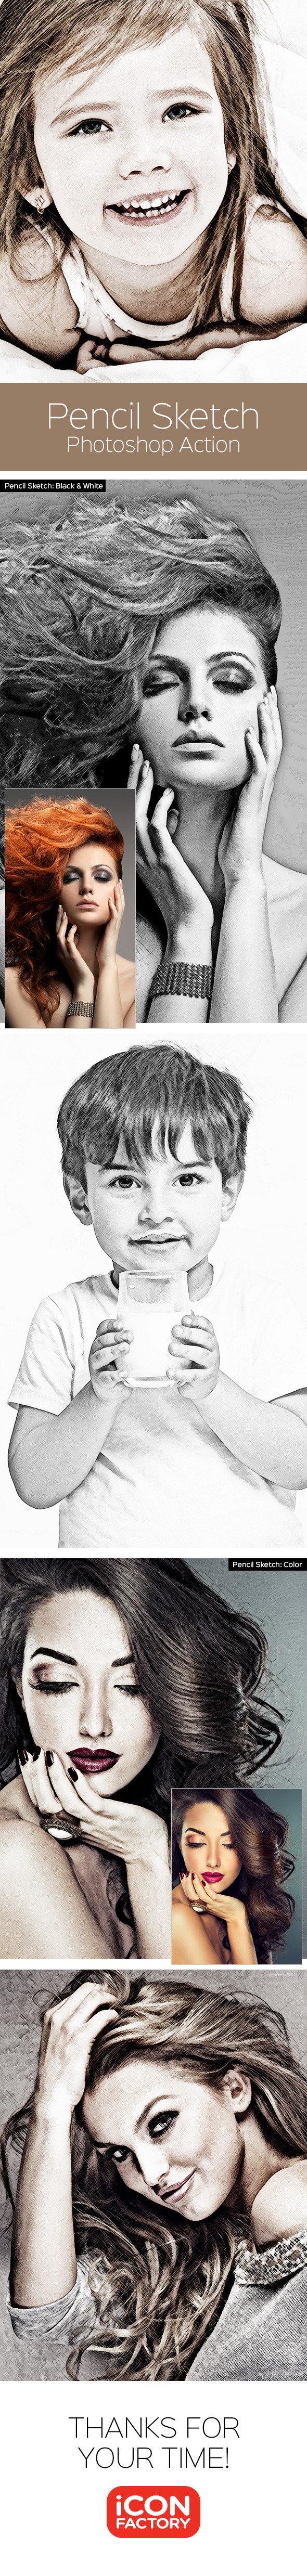 Pencil sketch photoshop action graphics designs templates